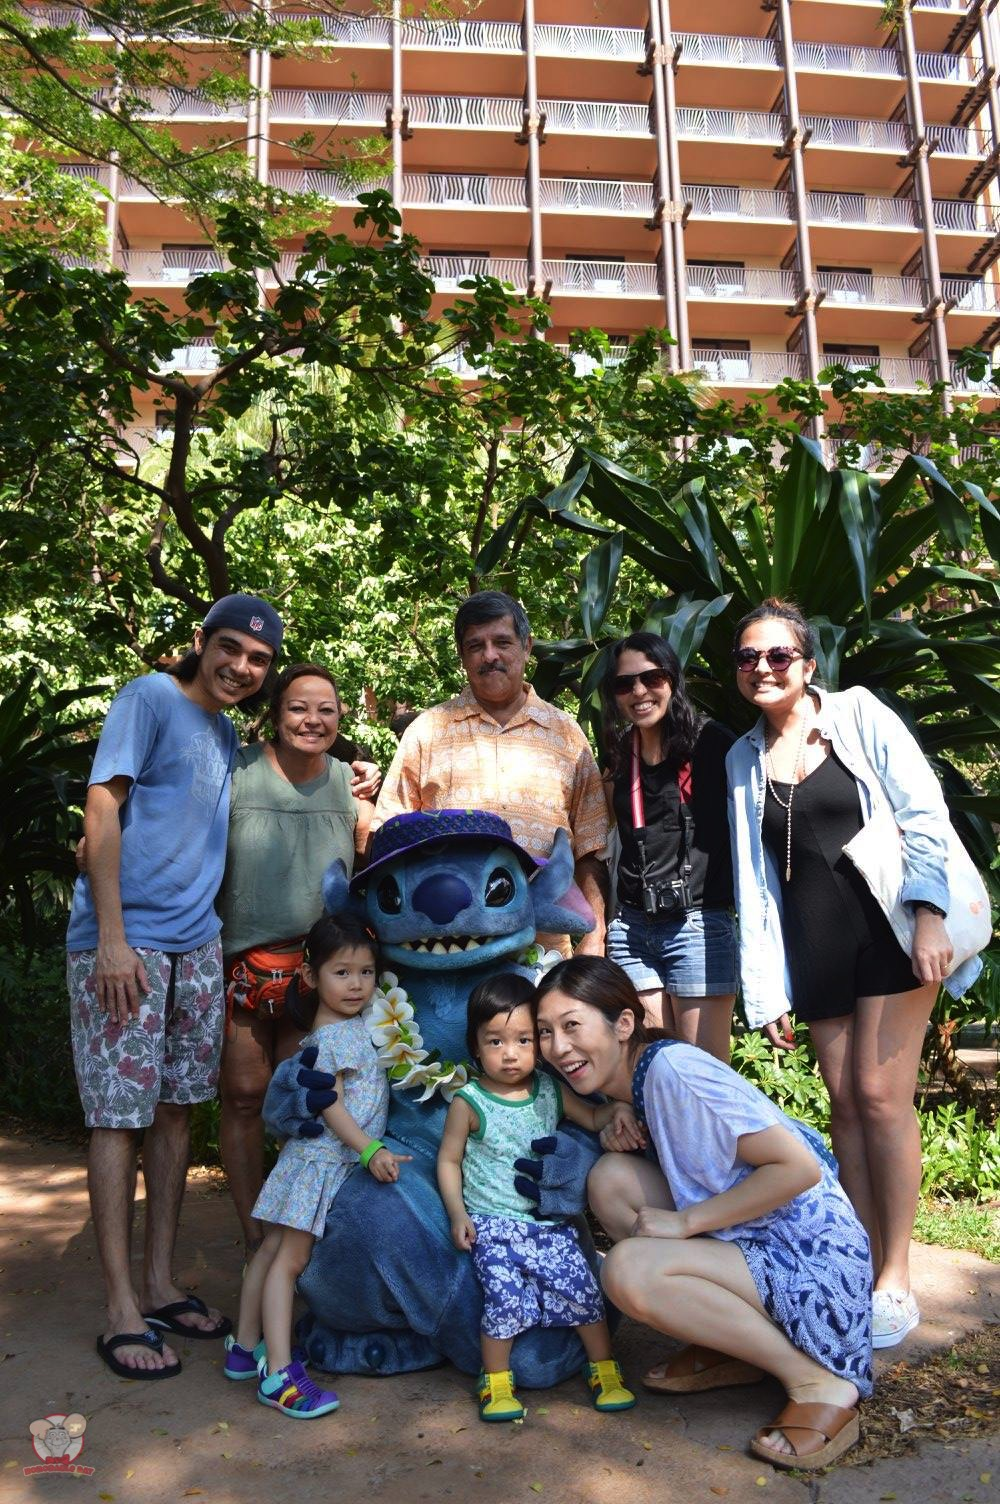 Family picture with Stitch